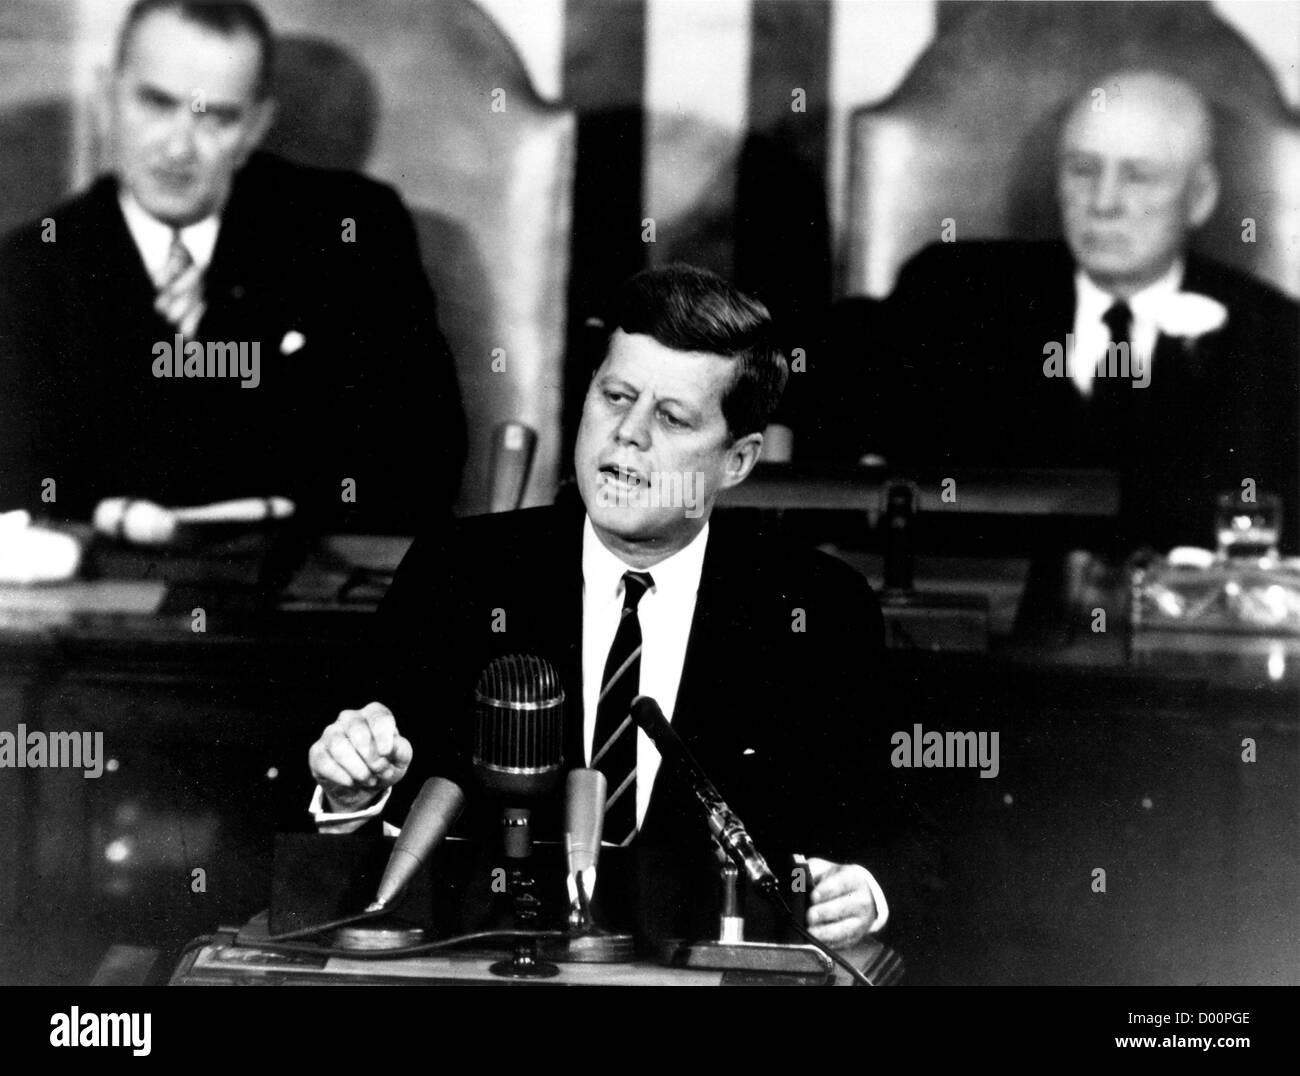 President John F Kennedy Giving Historic Speech Stock Photo